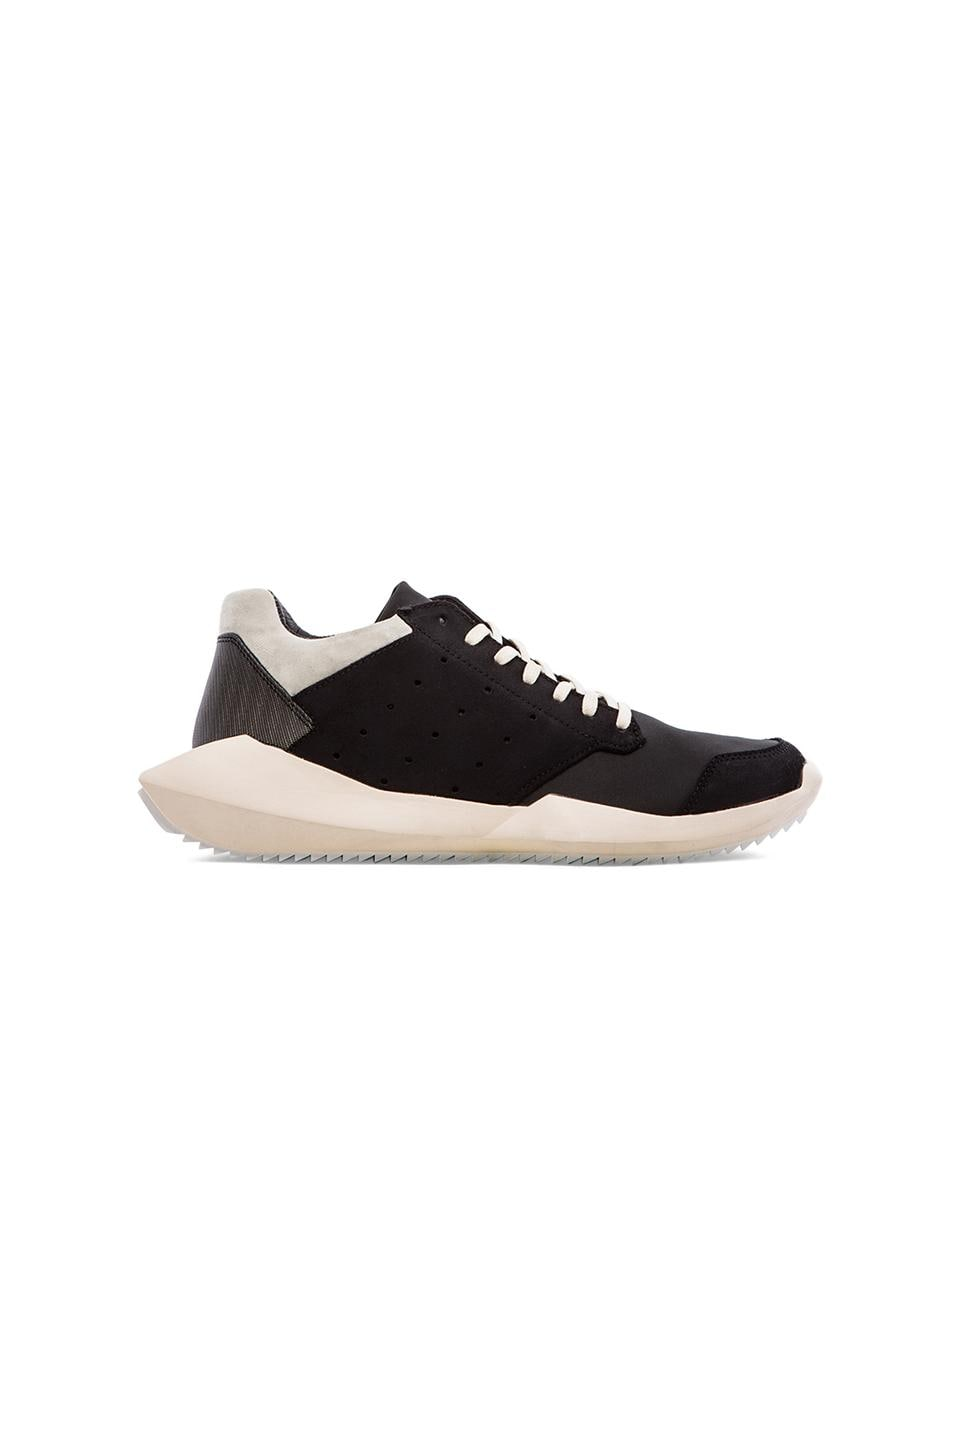 adidas by Rick Owens Tech Runner in Black & White & Light Bone